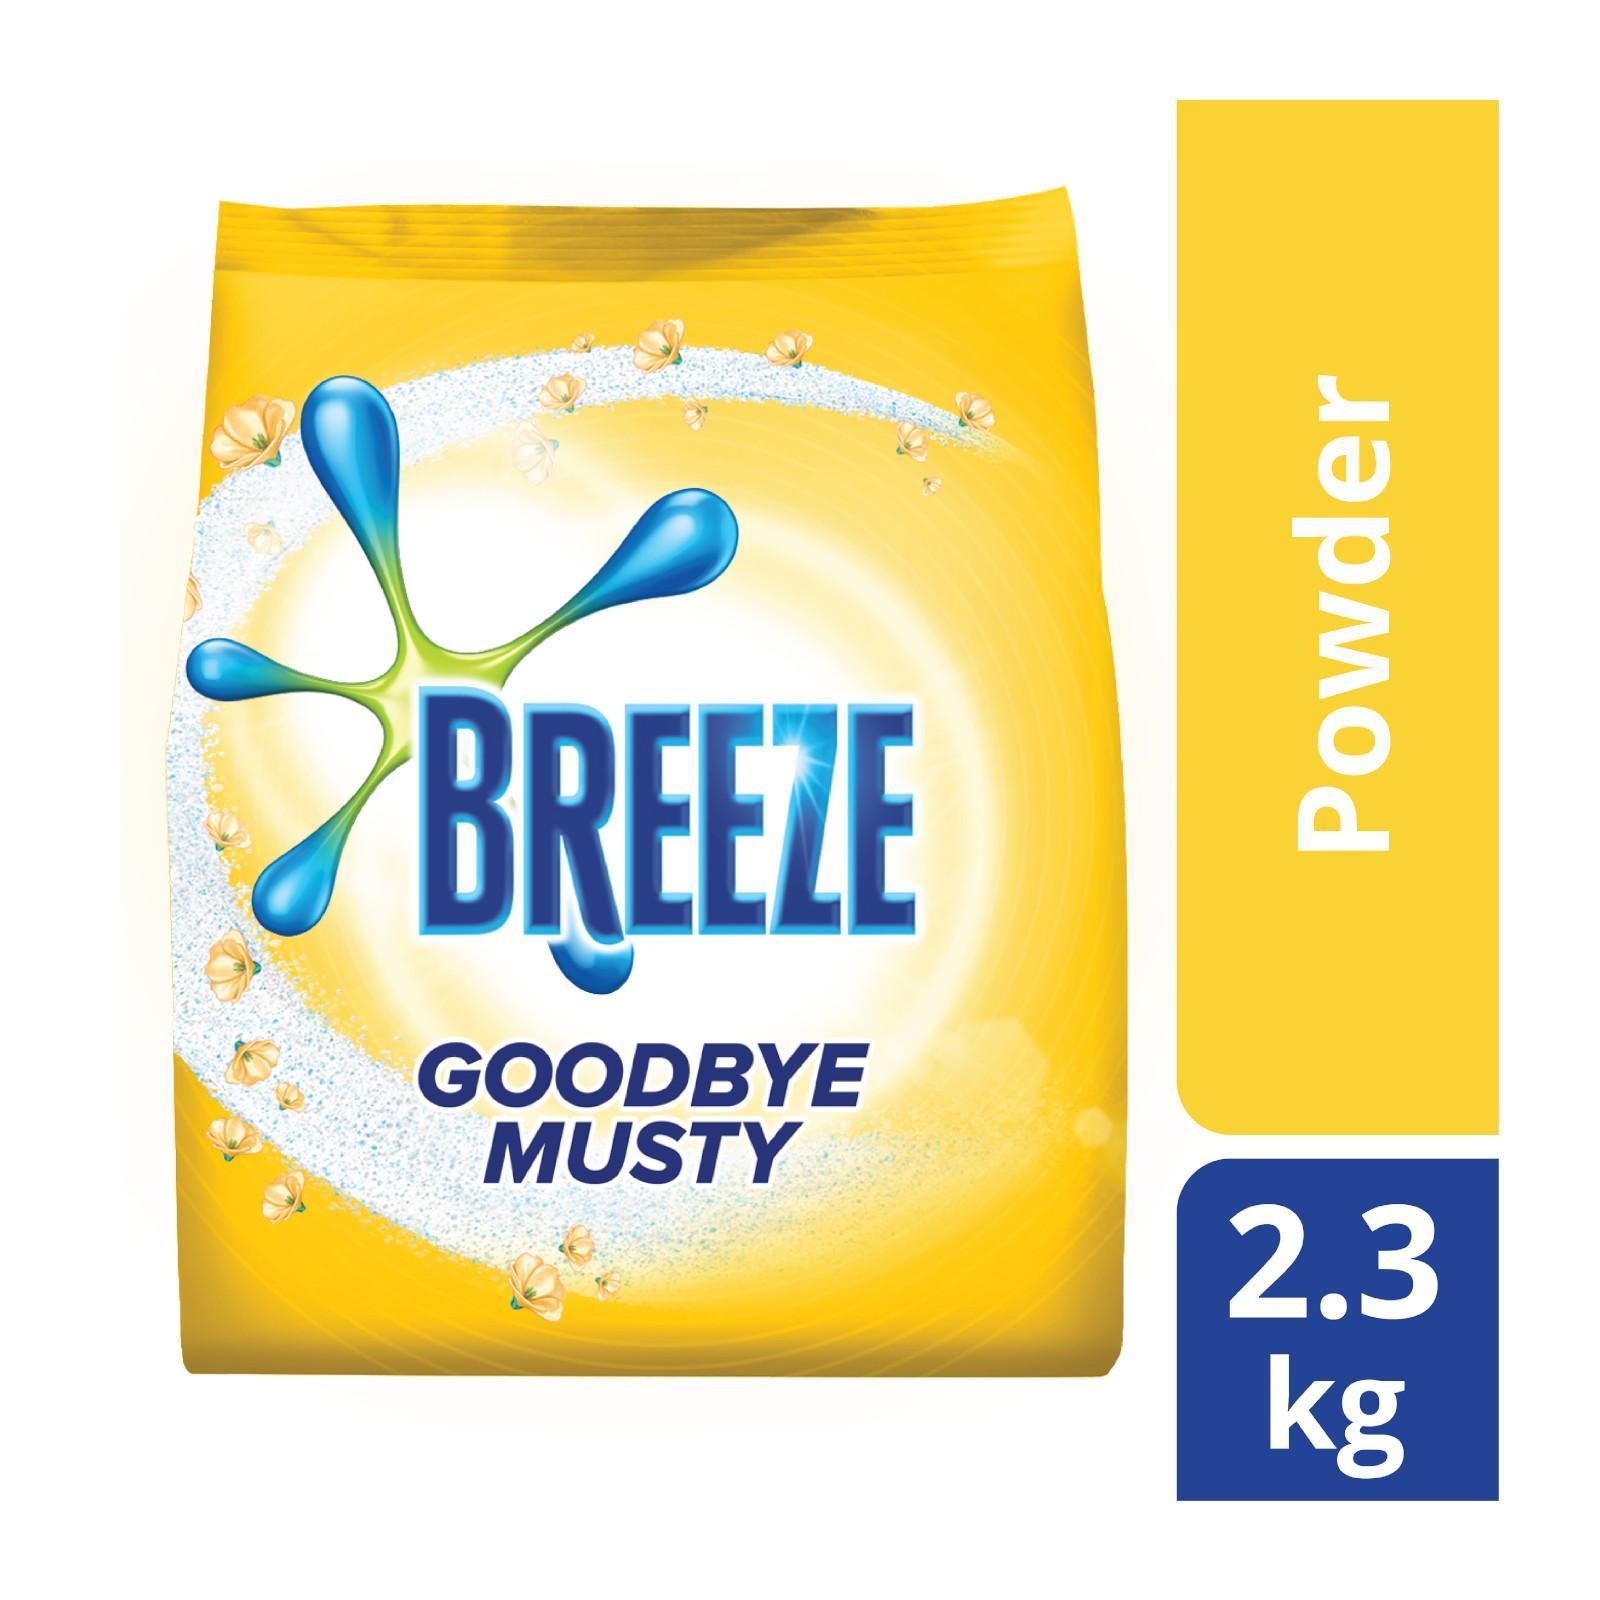 Breeze Goodbye Musty Indoor Drying Powder Detergent